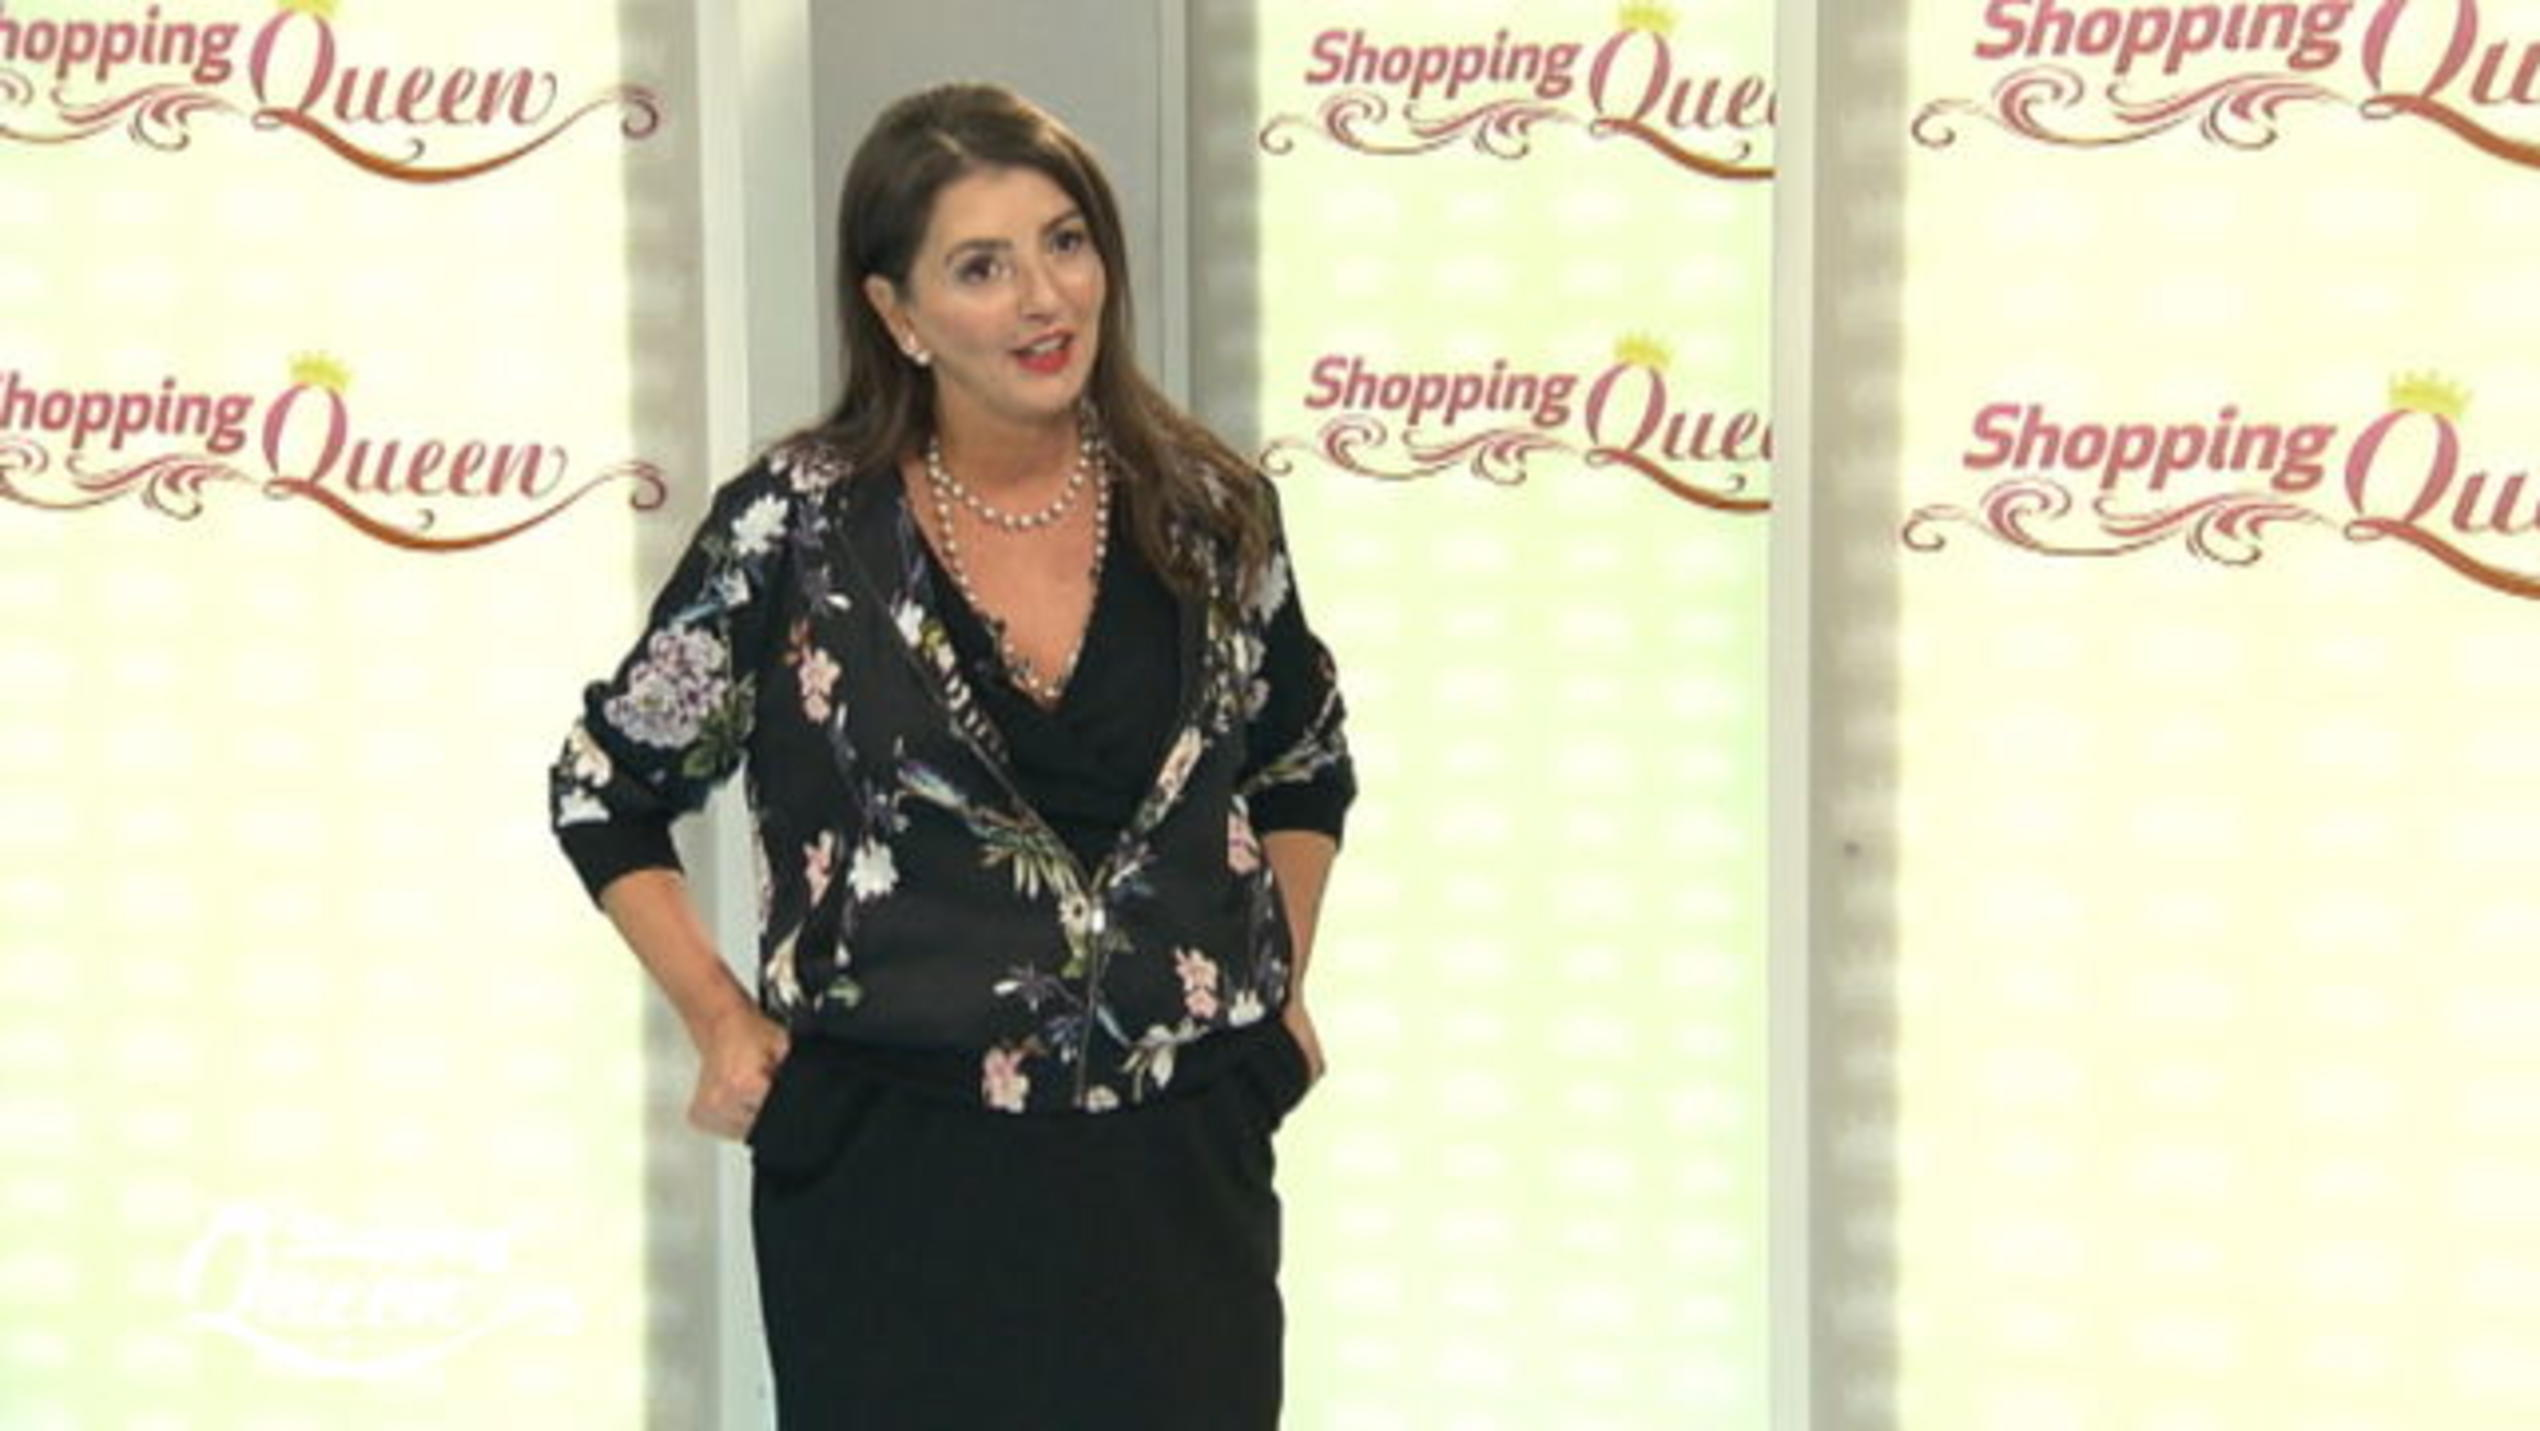 """Shopping Queen""-Kandidatin Anna auf dem Catwalk"